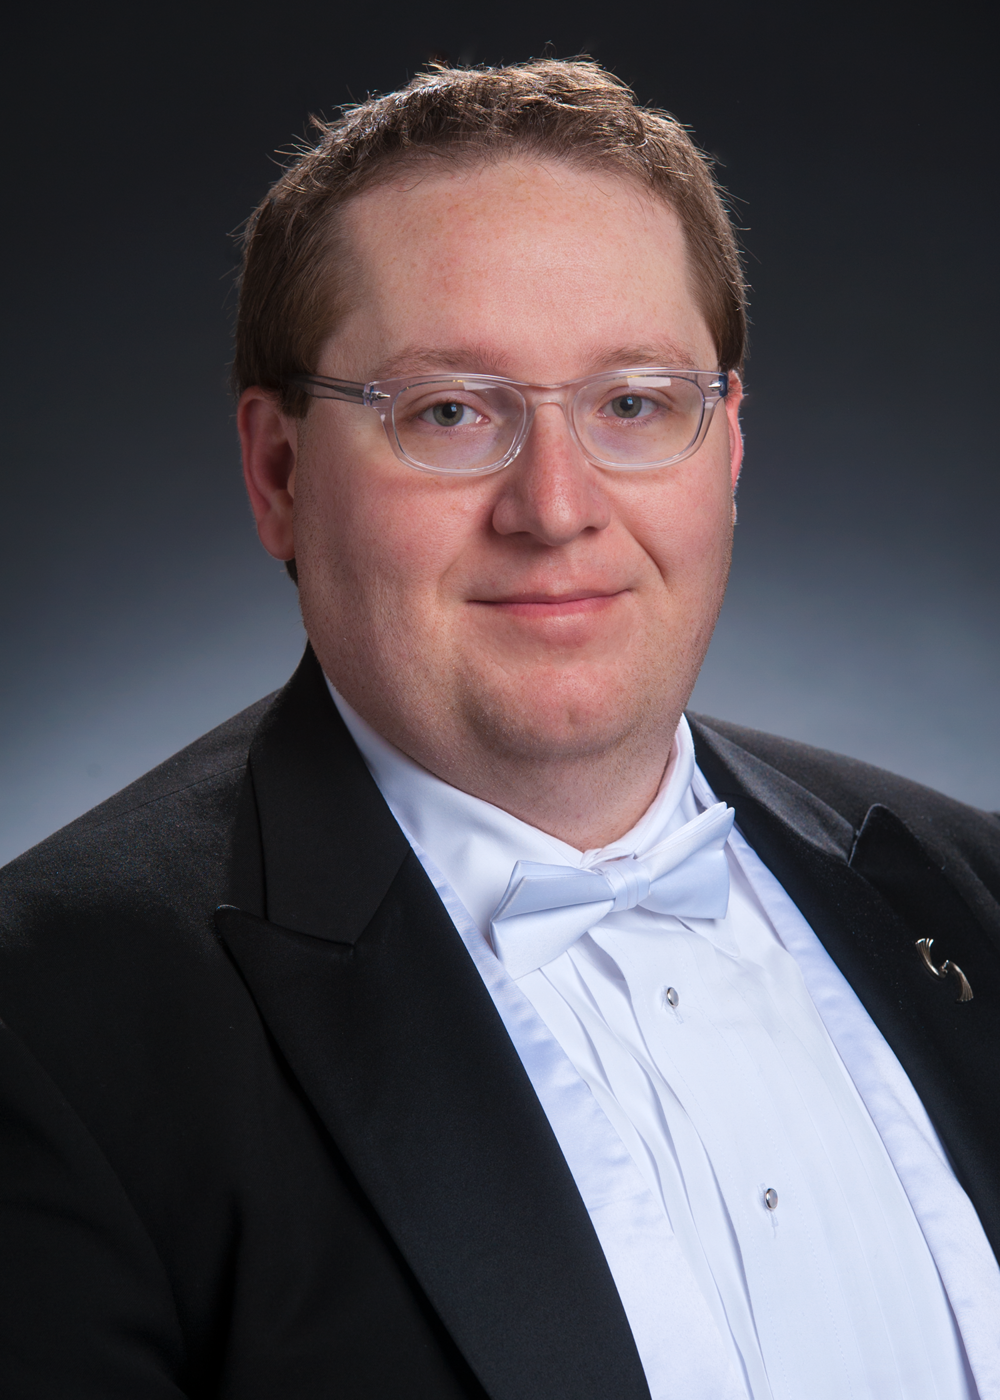 Steve Curtis, a native Houstonian, holds the positions of principal tuba with the Austin Symphony and the Shreveport Symphony, and is a member of the Paragon Brass Ensemble, ROCO Brass Quintet and Texas Brass. He has also performed with the Houston Symphony, Houston Grand Opera and Houston Ballet, and is an active freelance musician. Steve has studied with Dave Kirk, and is a graduate of the University of Houston, where he studied with Mark Barton and William Rose. He also holds a Masters in Educational Leadership from Stephen F. Austin State University. He serves on faculty of the AFA Summer Music Festival, as well as maintaining an extensive private teaching studio.RESUME -